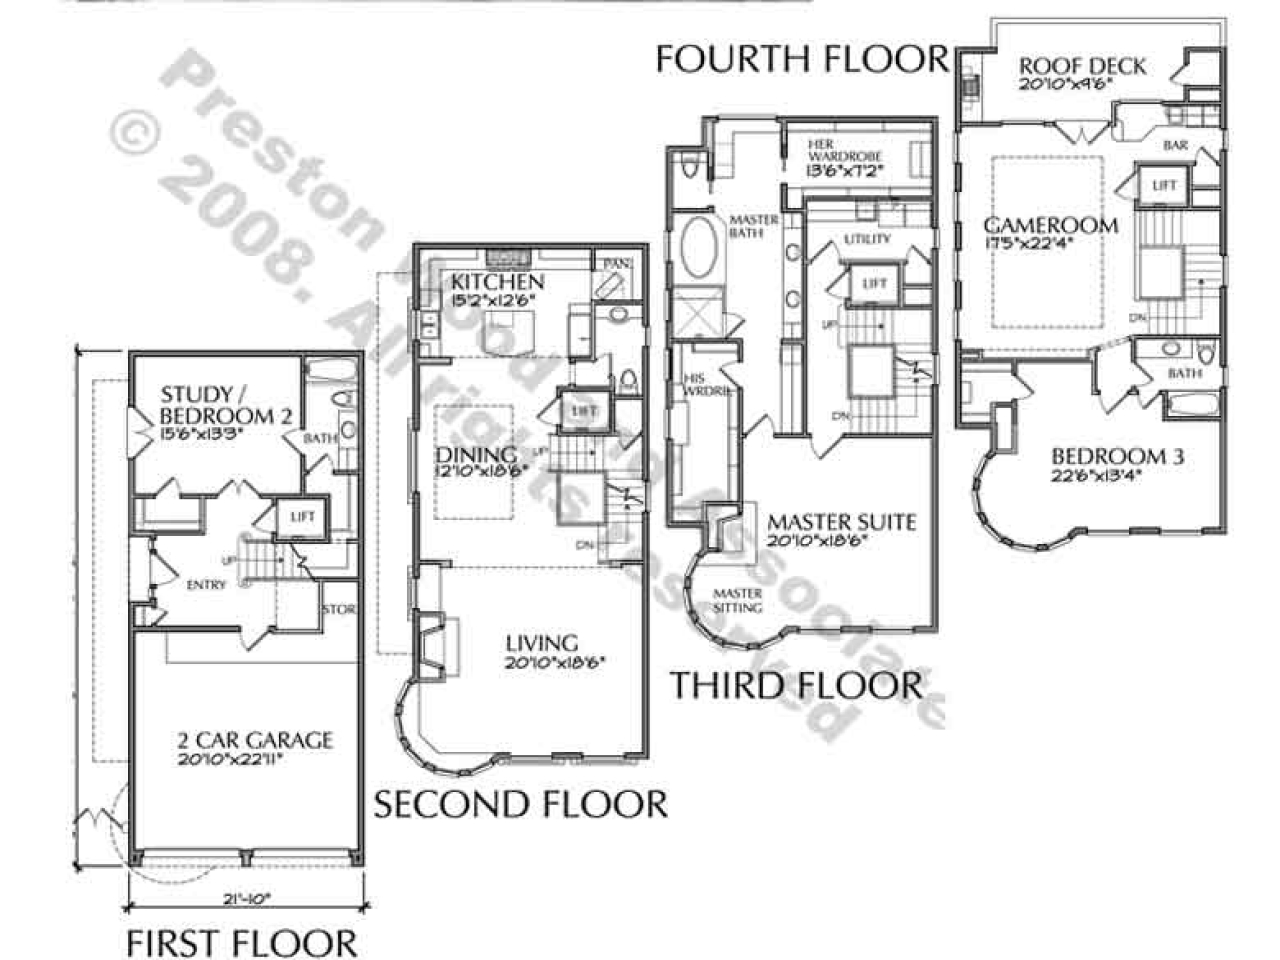 4story Townhouse Plans 4story Transparent Background